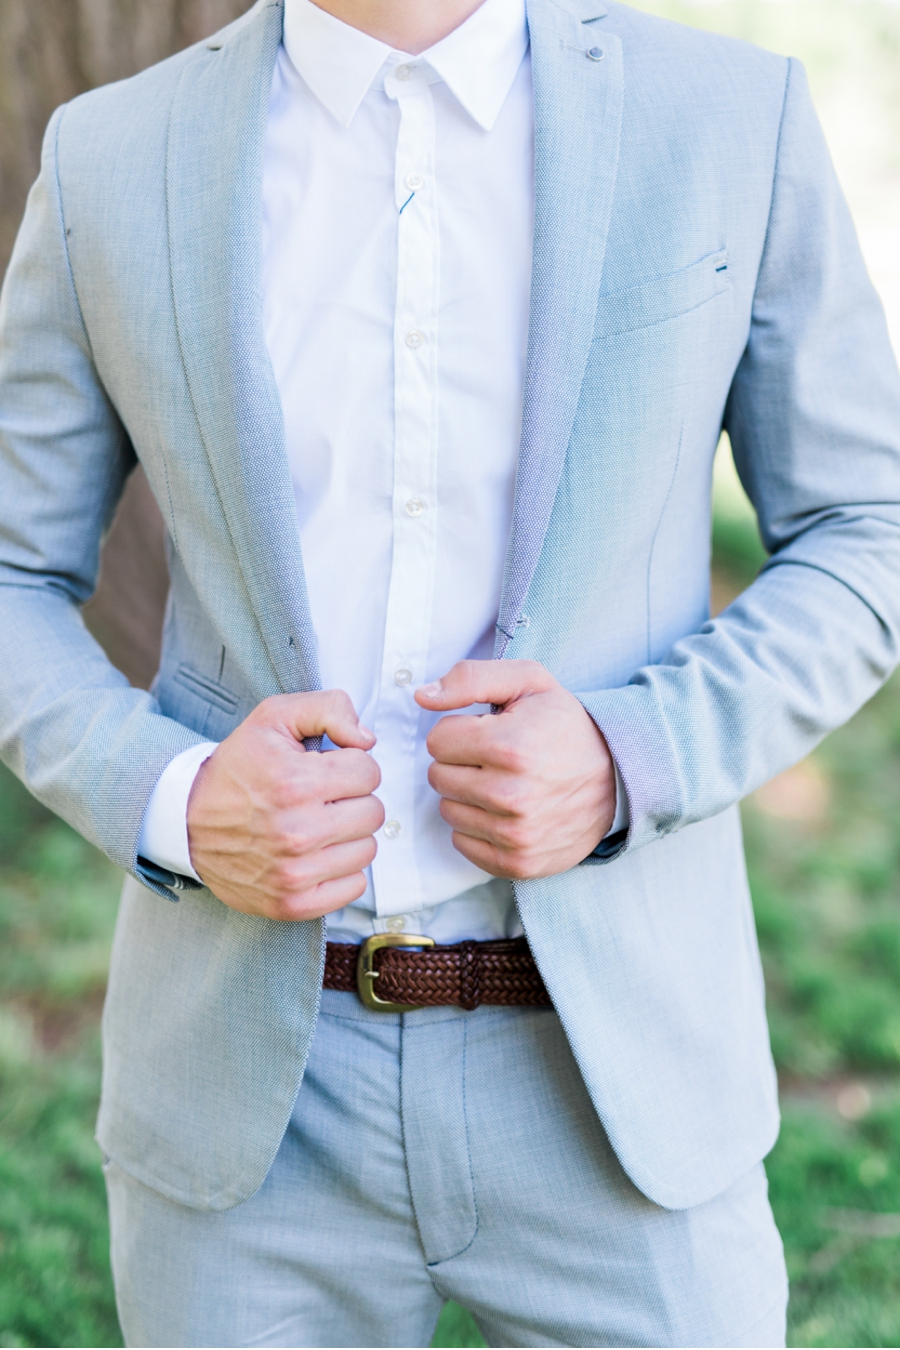 Groom's-Pale-Blue-Suit